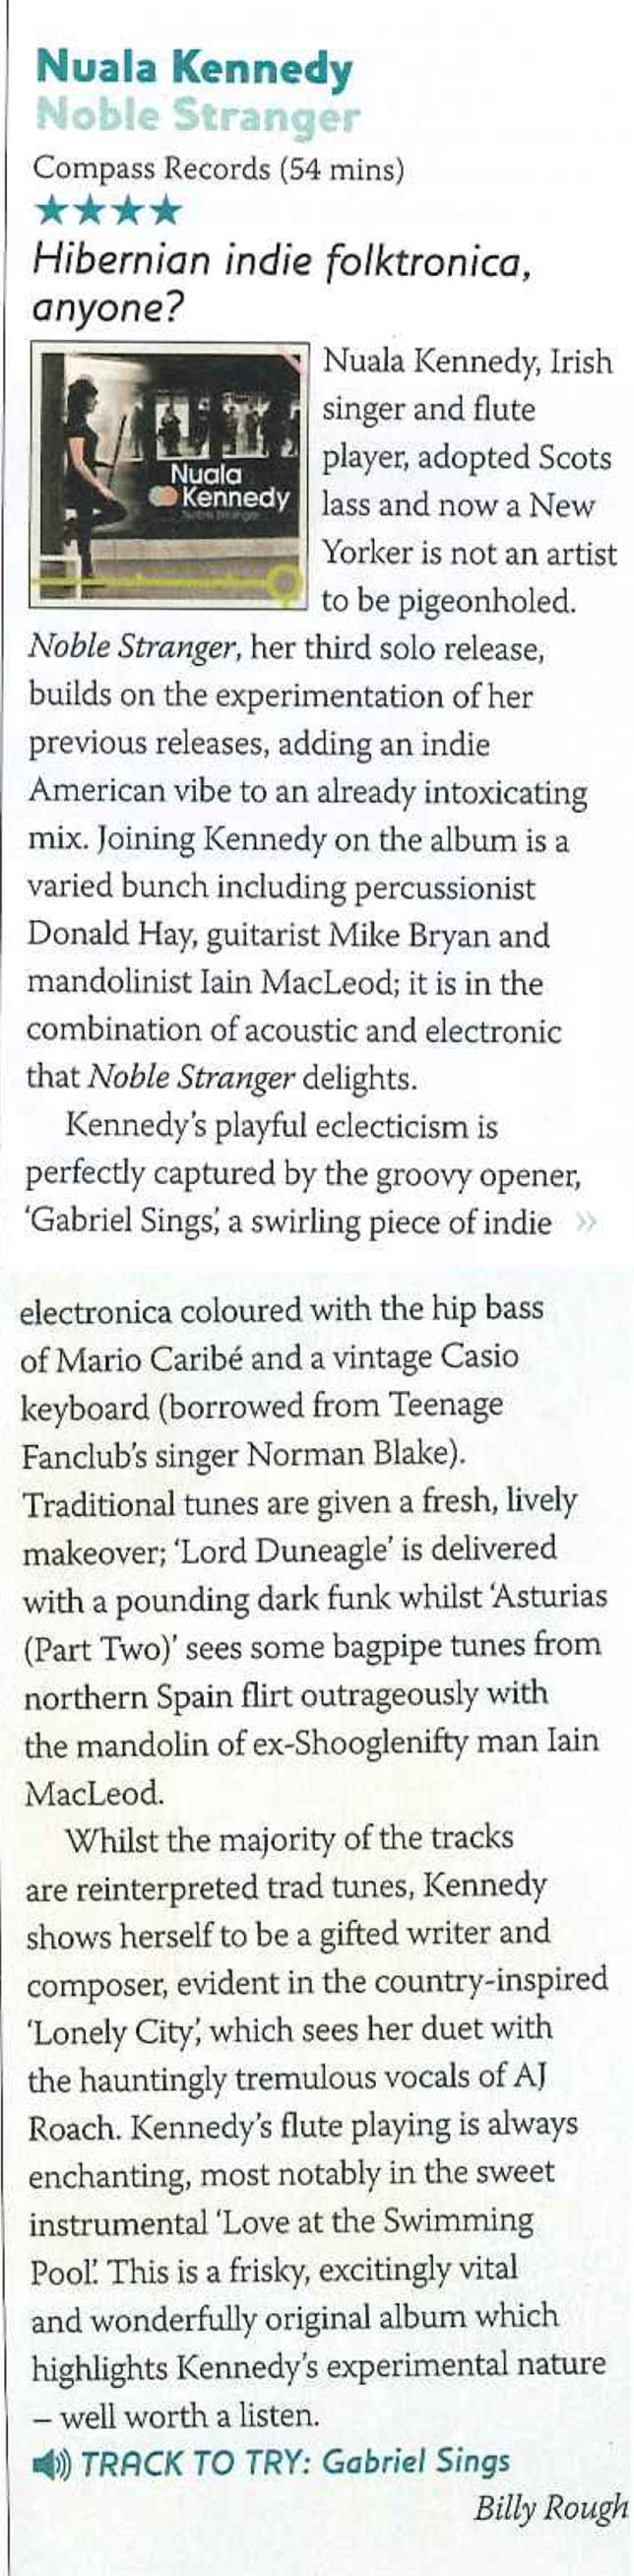 Nuala Kennedy Noble Stranger review Songlines.jpg